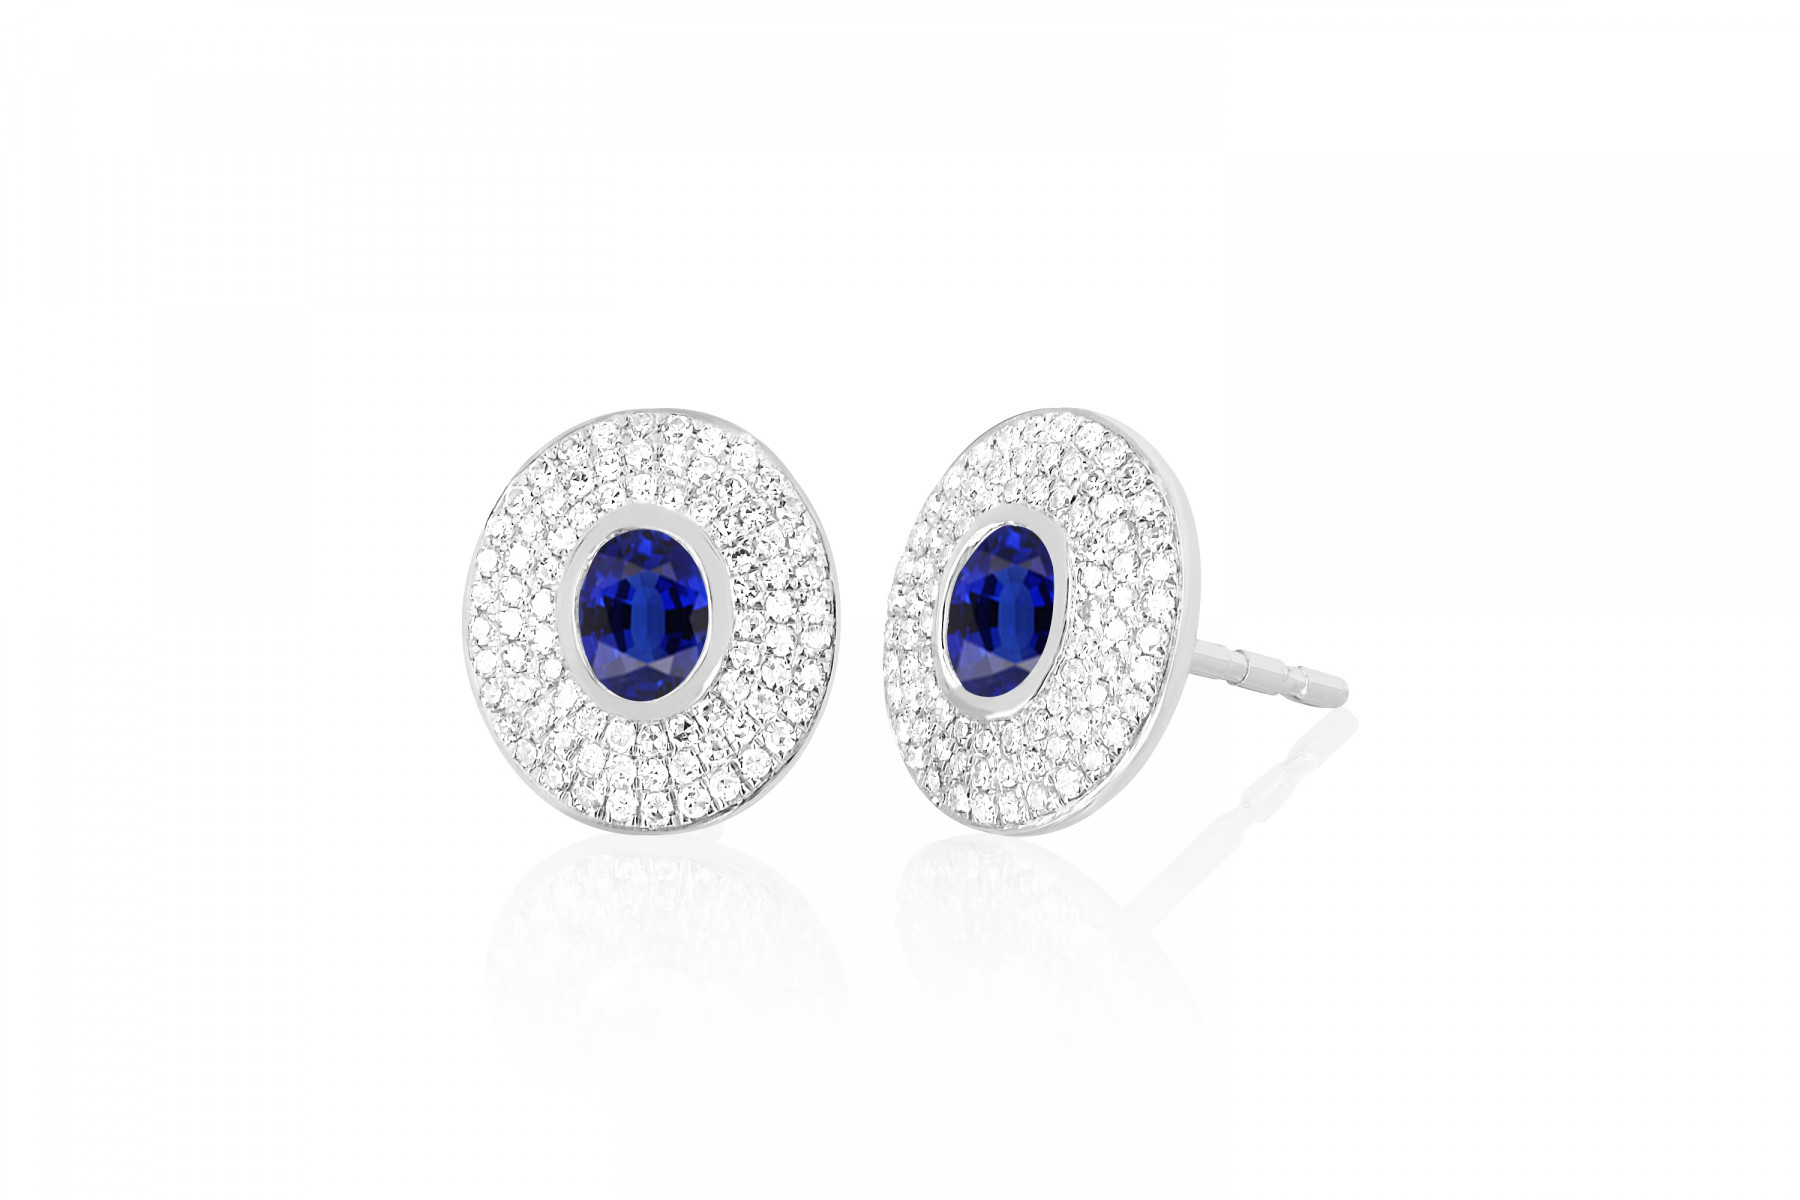 EF Collection Blue Sapphire and Diamond Oval Stud Earrings in white Gold